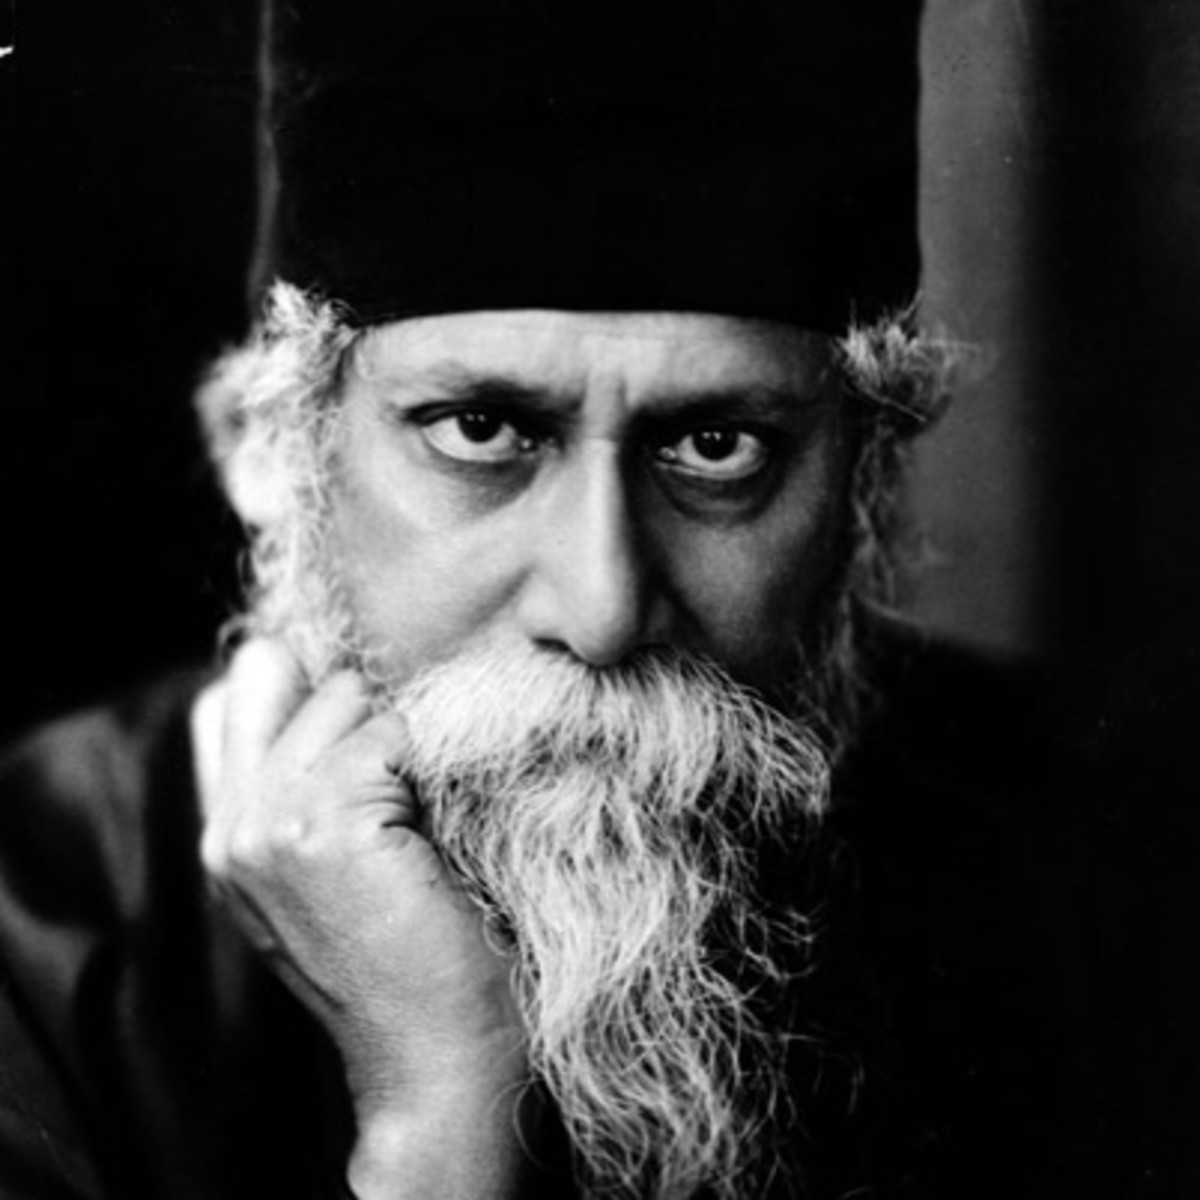 essay of rabindranath tagore rabindranath tagore painter author  rabindranath tagore painter author screenwriter poet rabindranath tagore painter author screenwriter poet playwright com